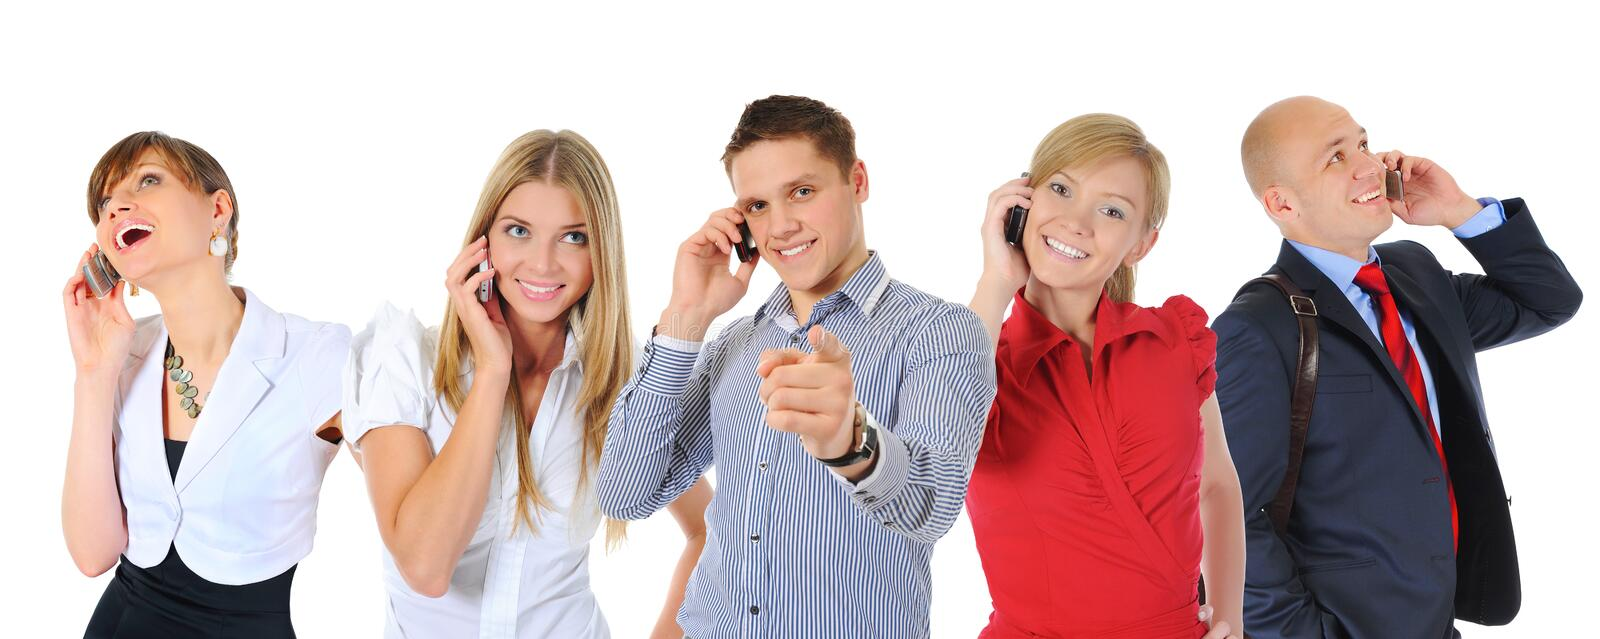 Picture of man and woman with cell phones royalty free stock photo